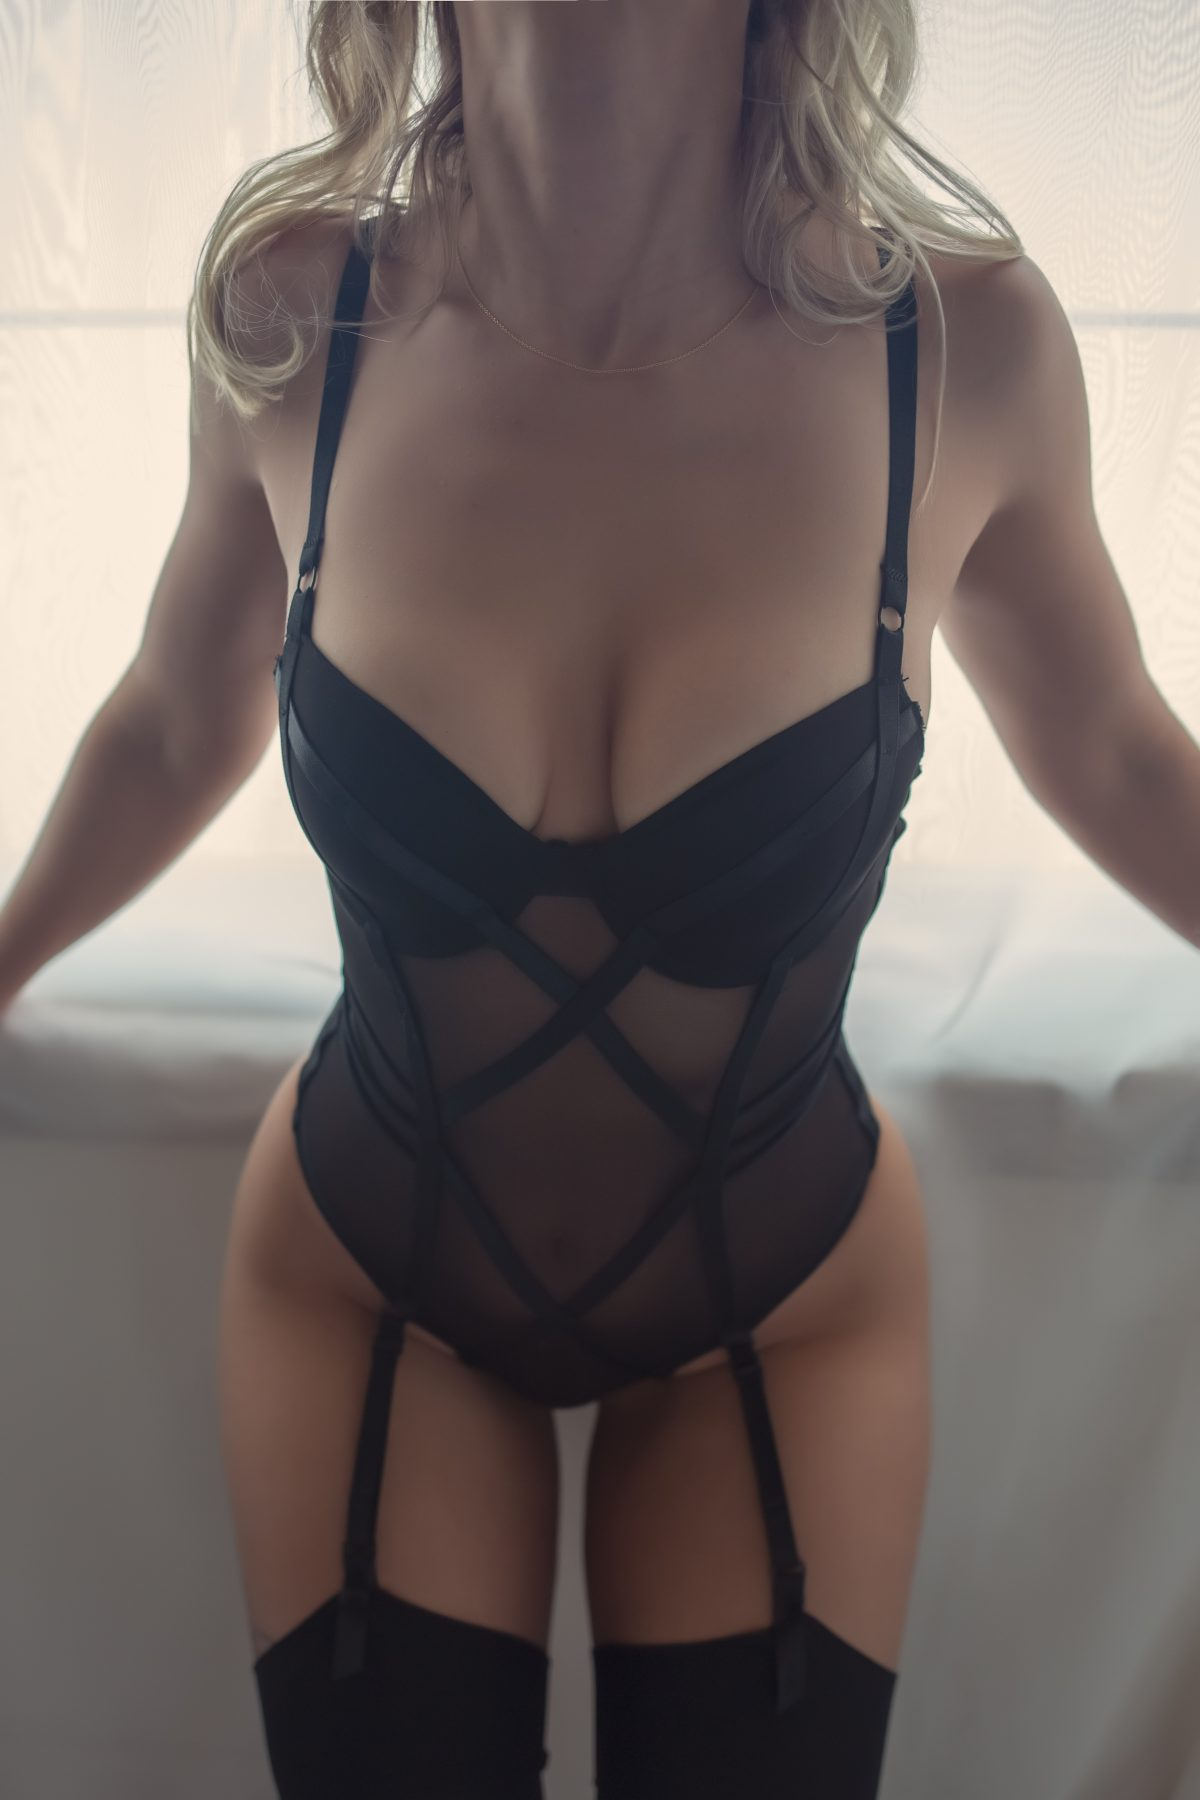 Toronto escorts companion upscale Naomi Interests Duo Couple-friendly Disability-friendly Non-smoking Age Mature Figure Slender Petite Breasts Natural Hair Blonde Ethnicity European Tattoos Large